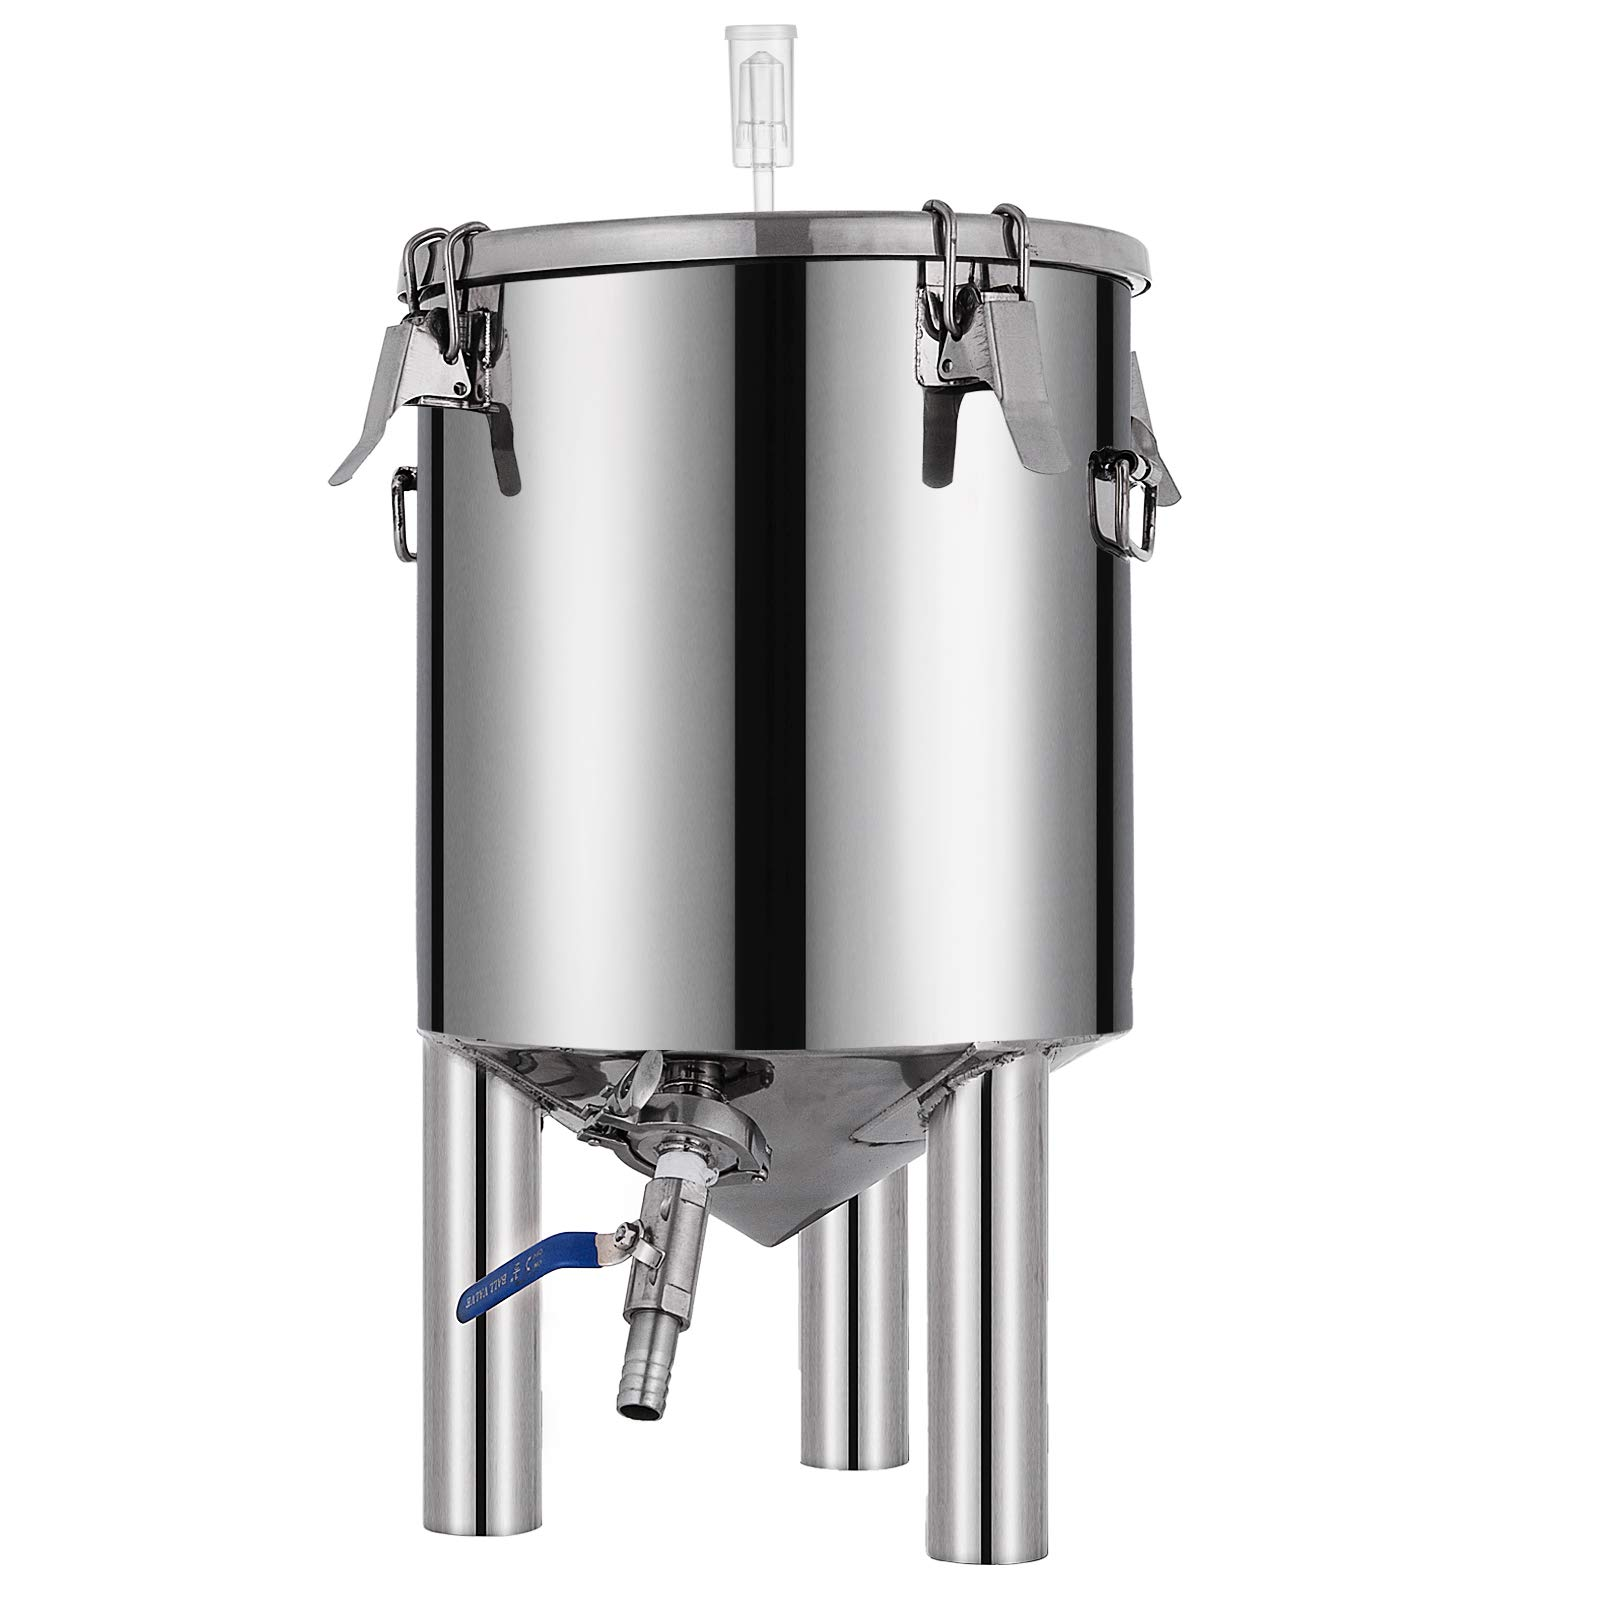 VEVOR 7 Gallon Stainless Steel Brew Fermenter Home Brewing Brew Bucket Fermenter With conical base Brewing Equipment by VEVOR (Image #3)